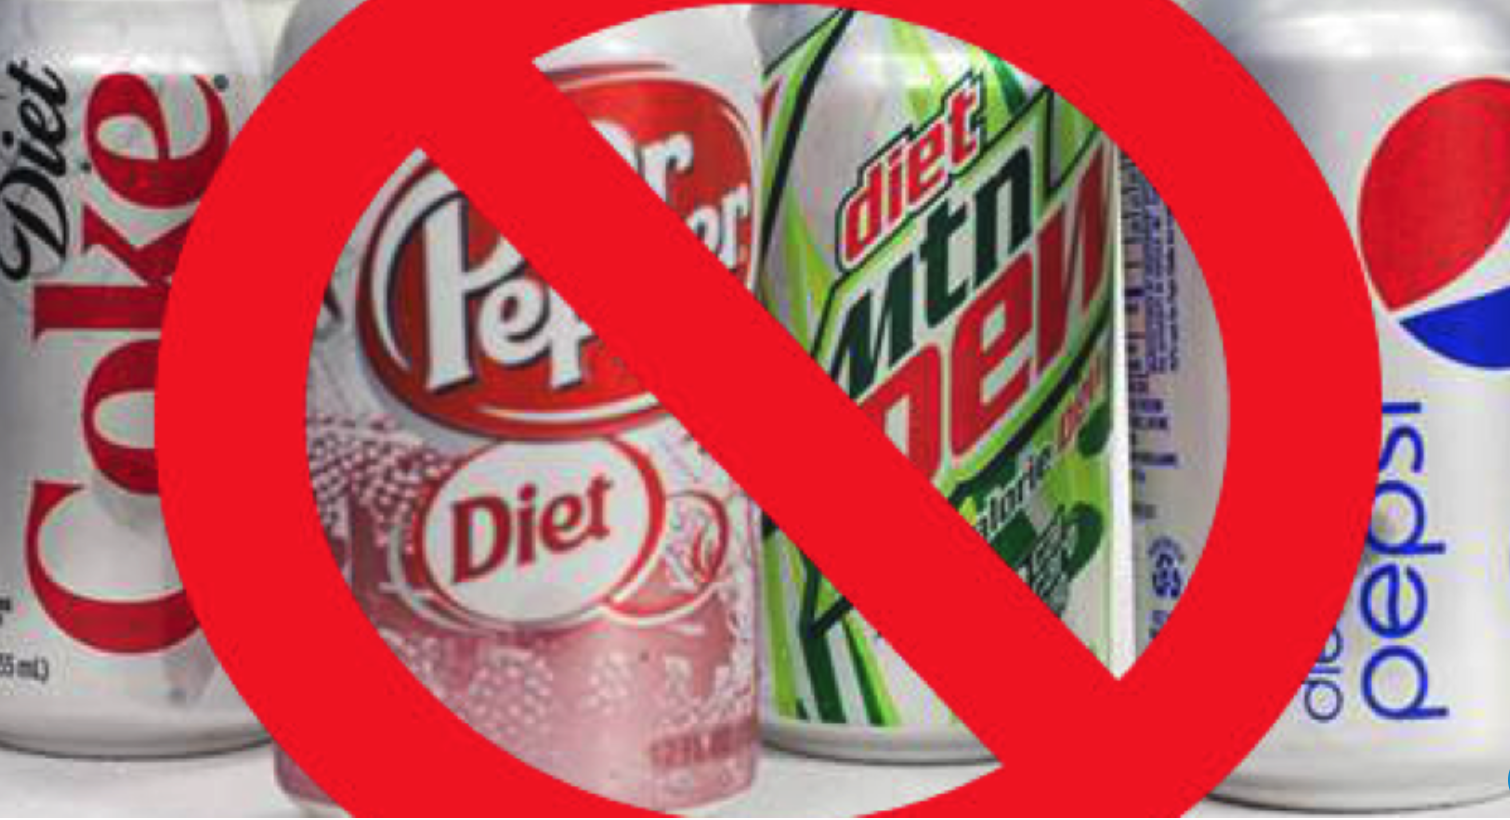 does diet drinks help you lose weight